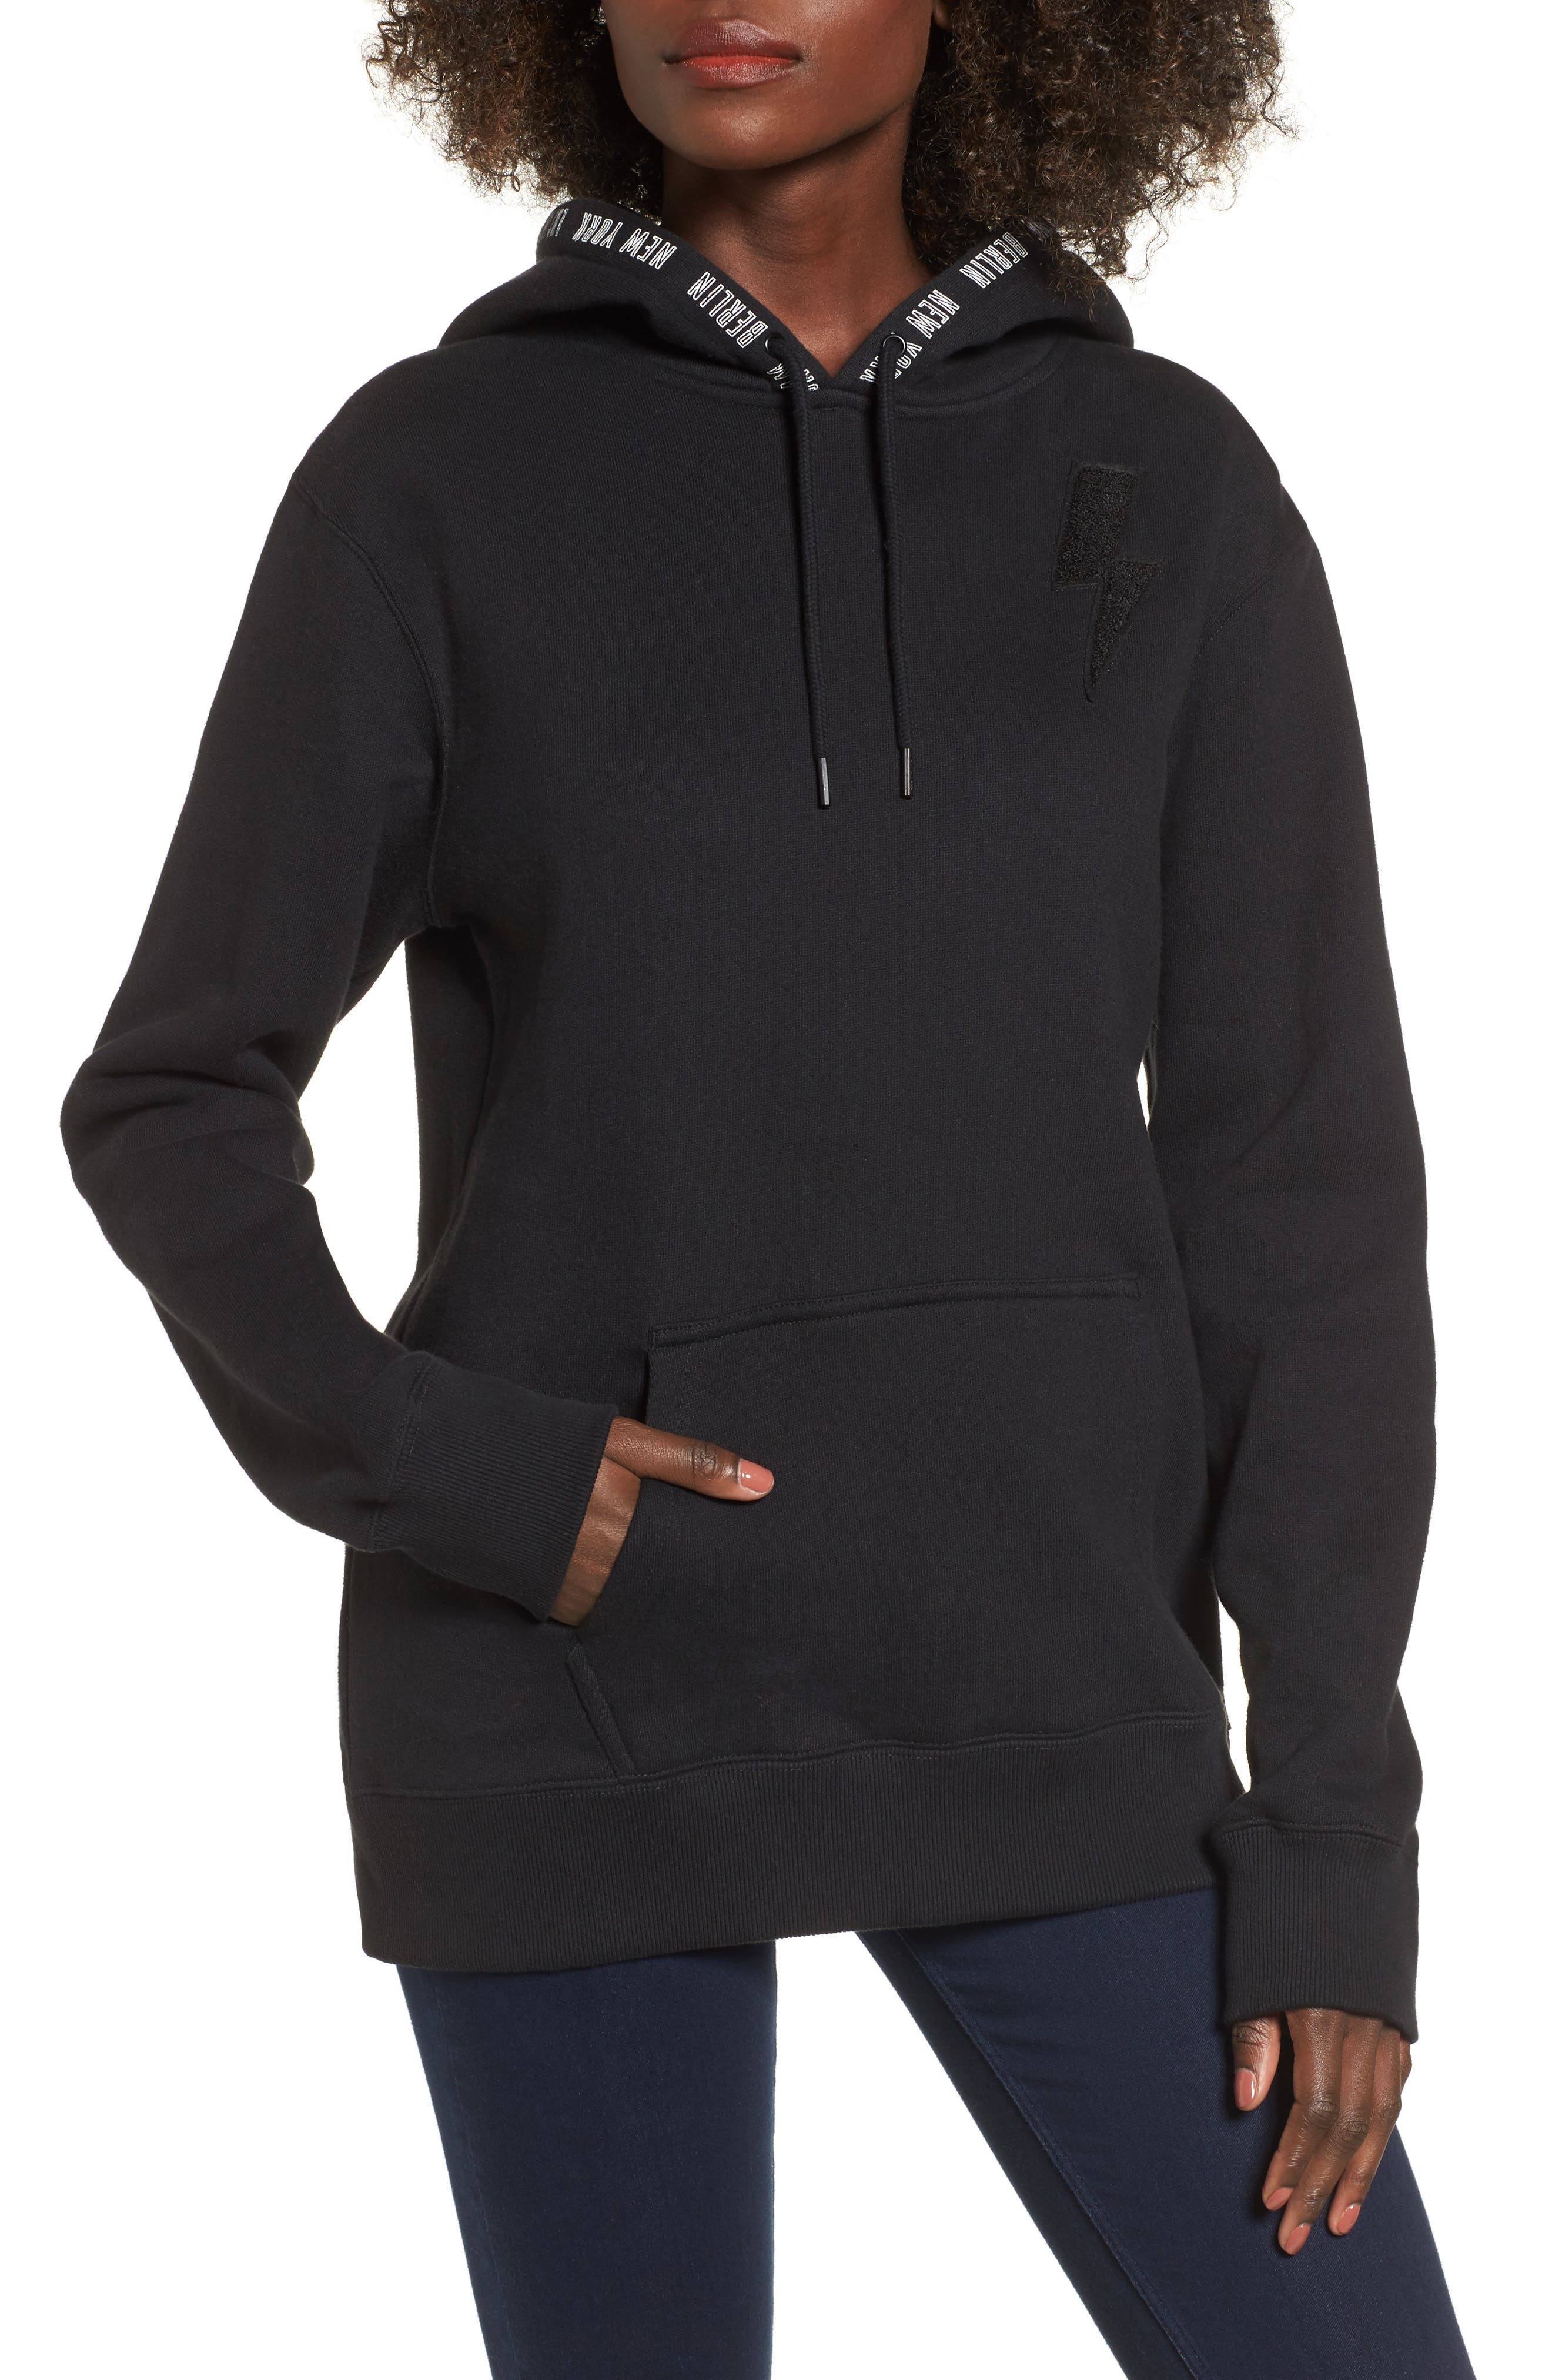 Me Too Hoodie,                             Main thumbnail 1, color,                             001